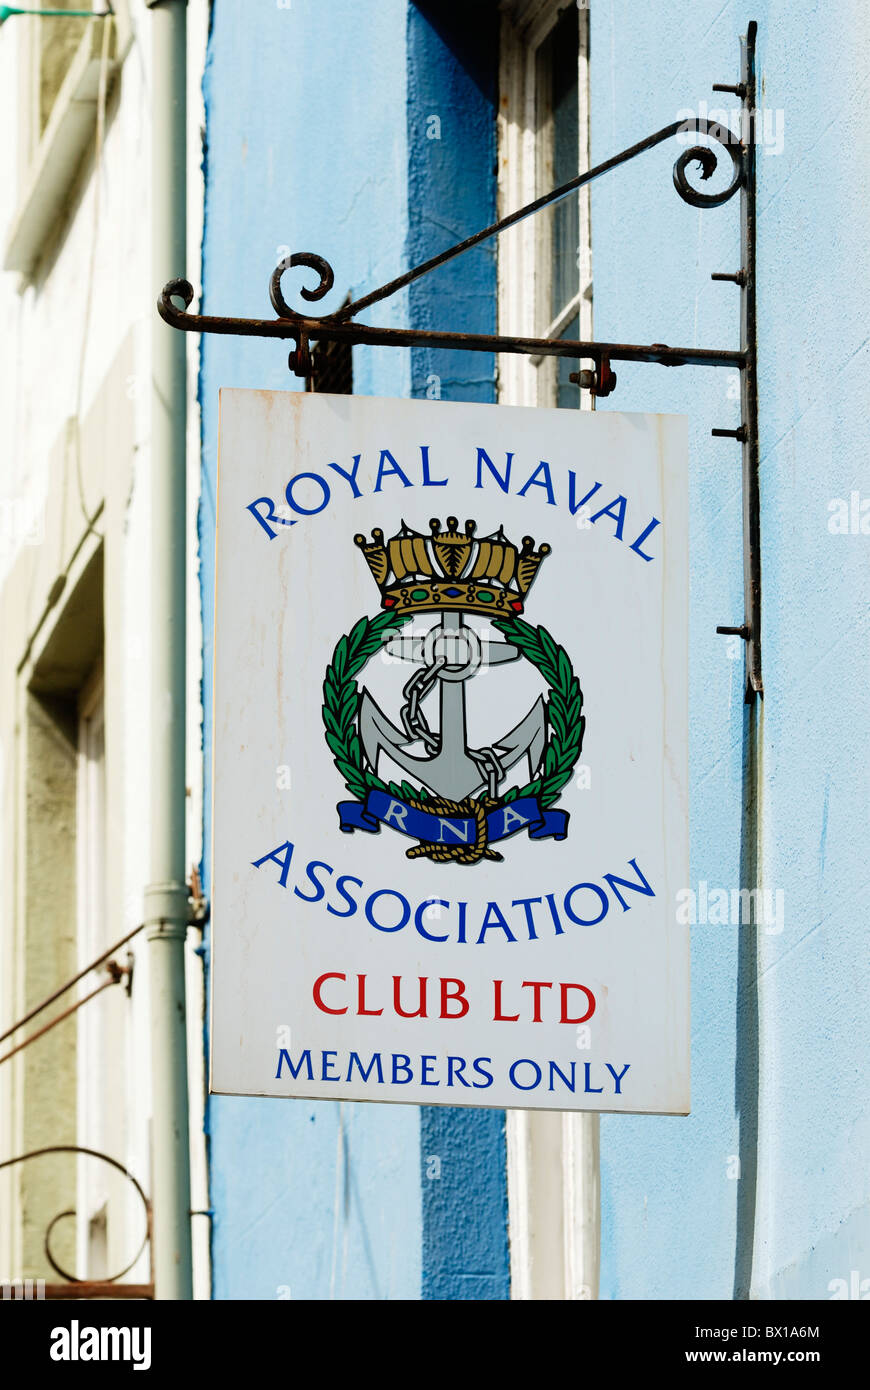 Royal Naval Association Club Ltd, Members Only sign, Aberystwyth, Wales - Stock Image